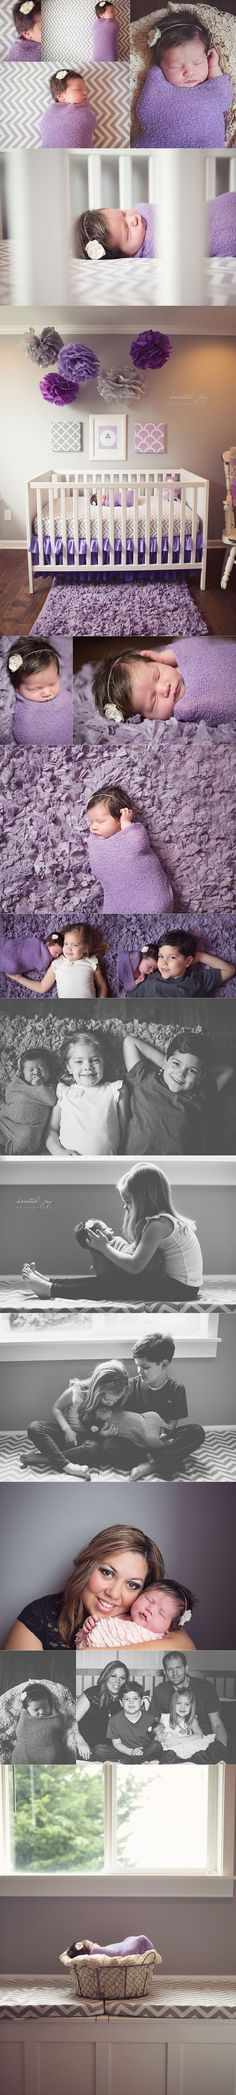 OMG!! these are some of the cutest new born pics ever!! {I love the one of the baby and big sissy holding her}